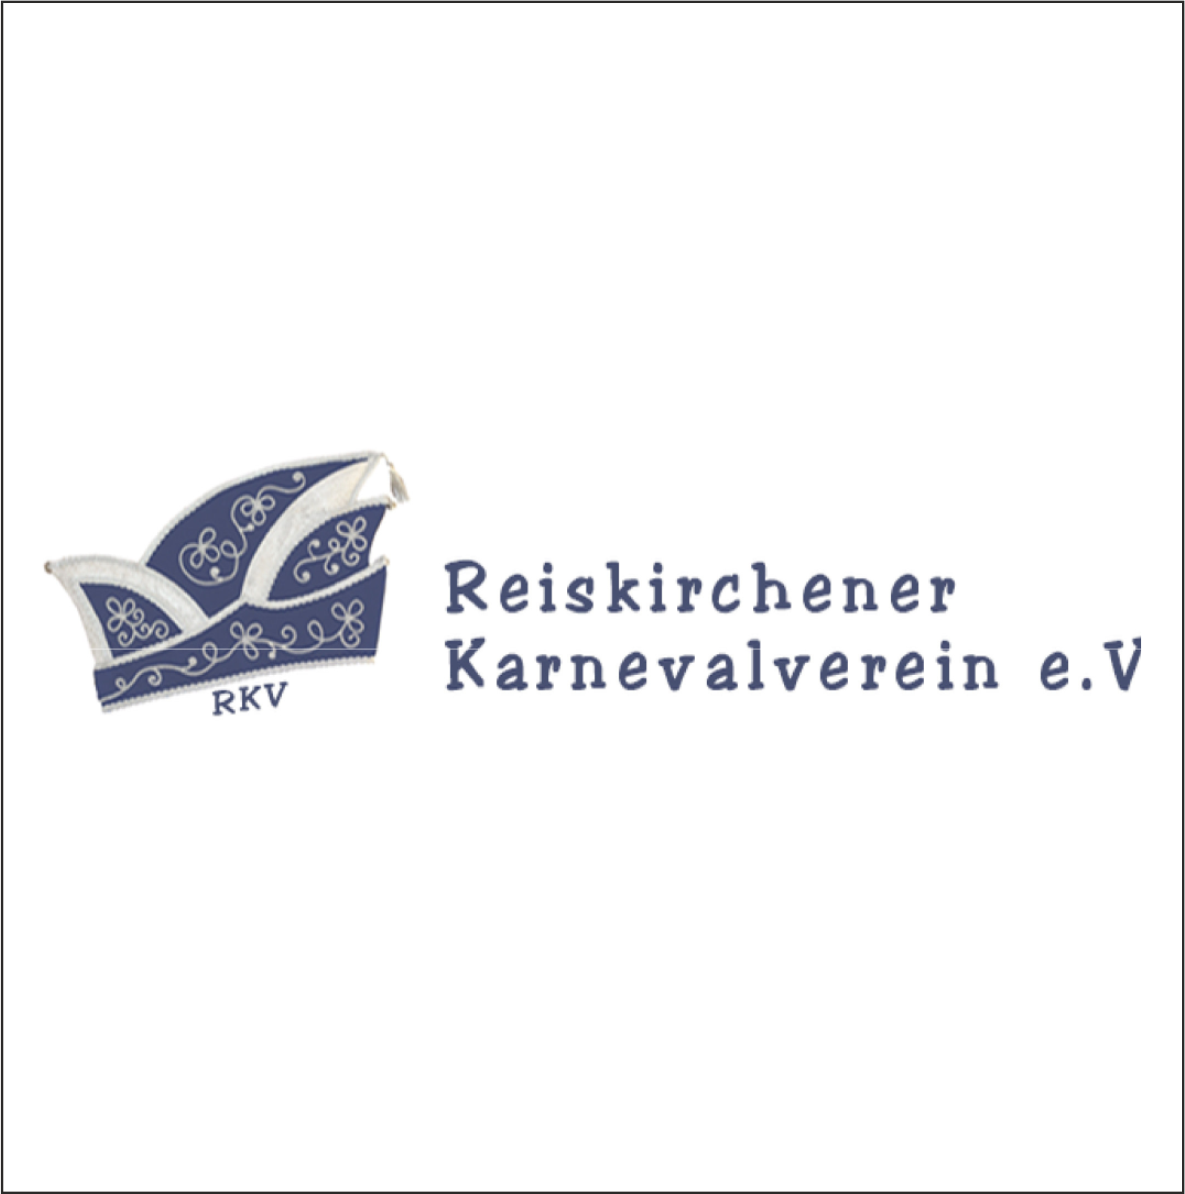 Reiskirchener-Karnevalsverein